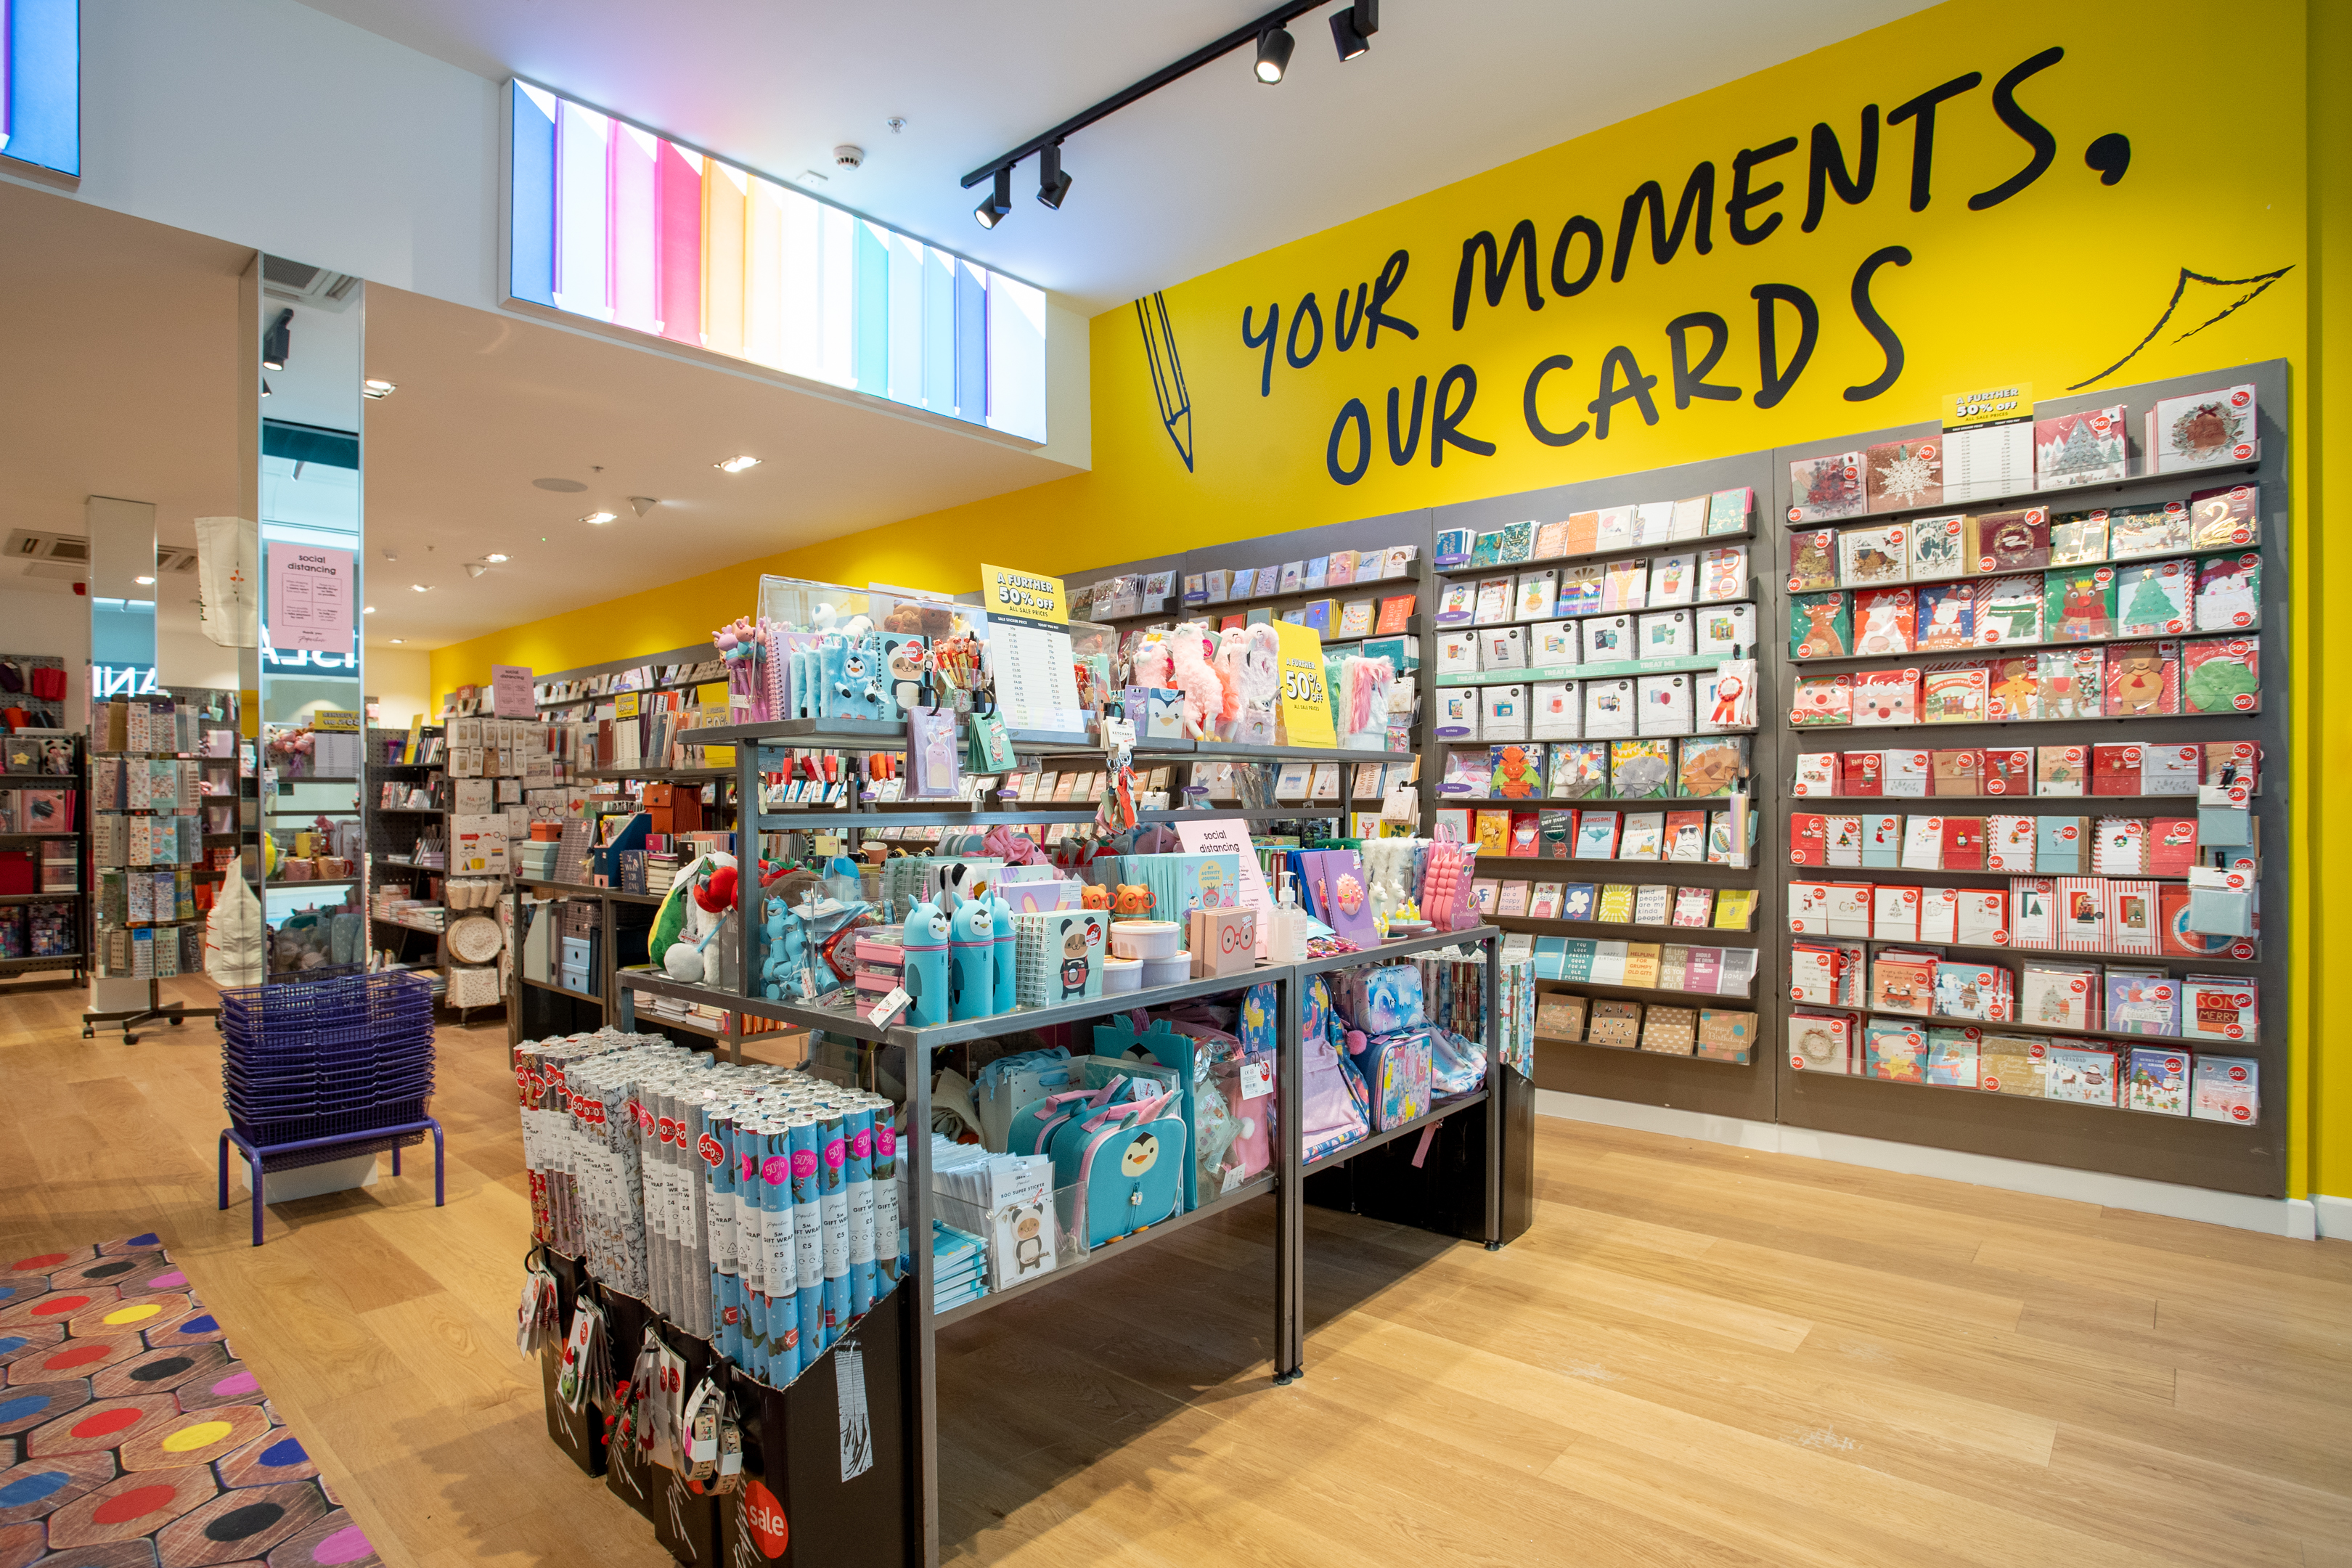 Above: Paperchase has made many good moments for suppliers over the years, just a shame that the payout from the recent collapse is so small for unsecured creditors.